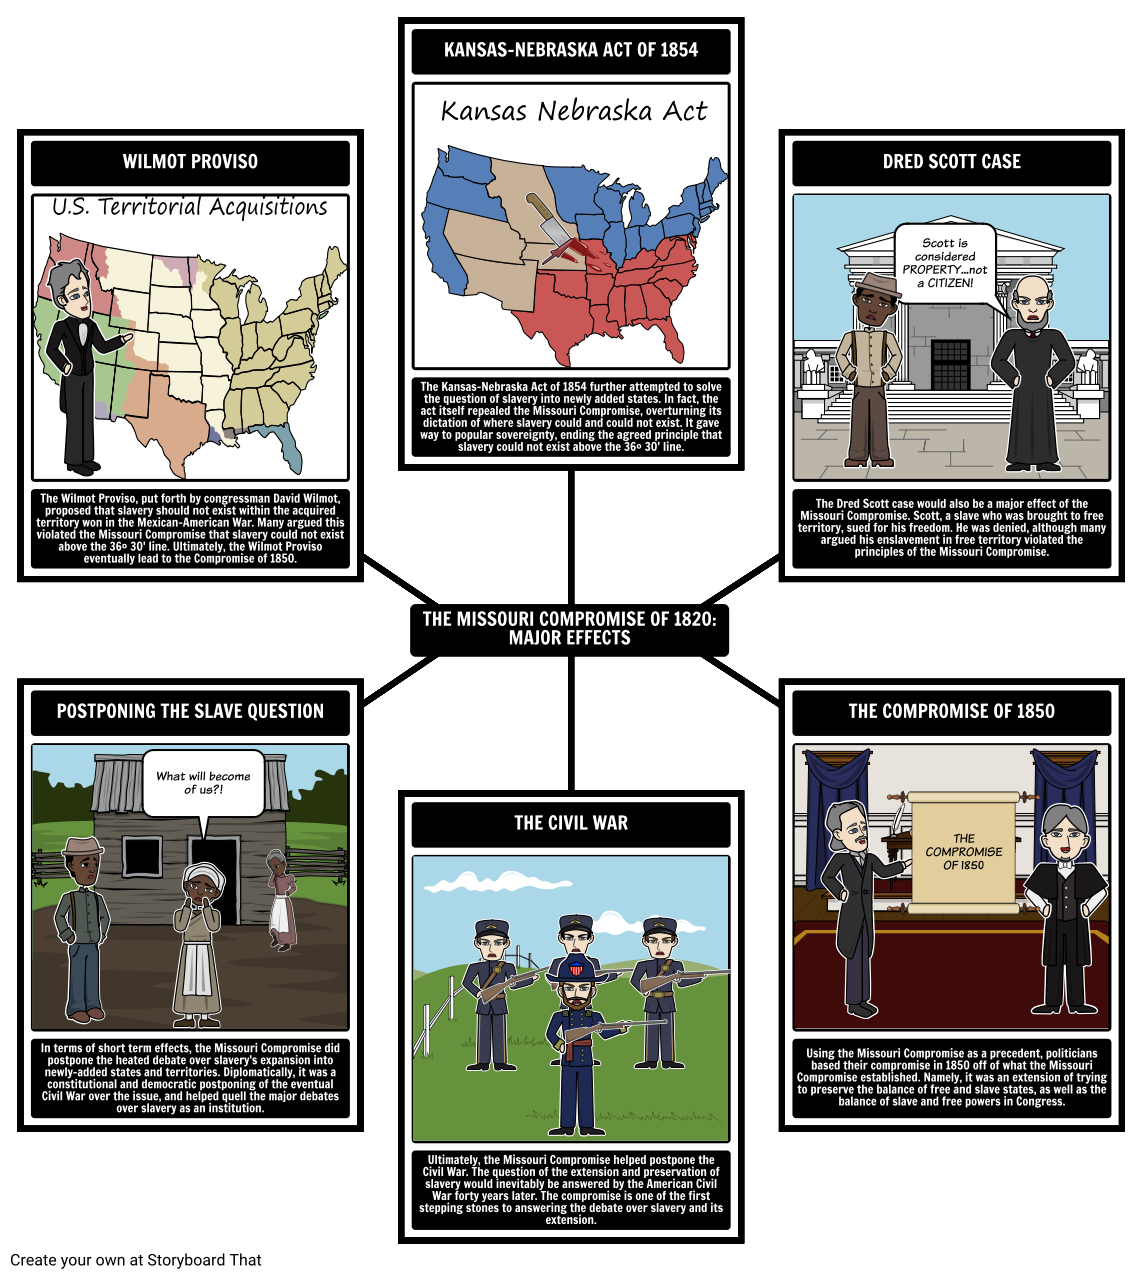 Major Effects Of The Missouri Compromise Of